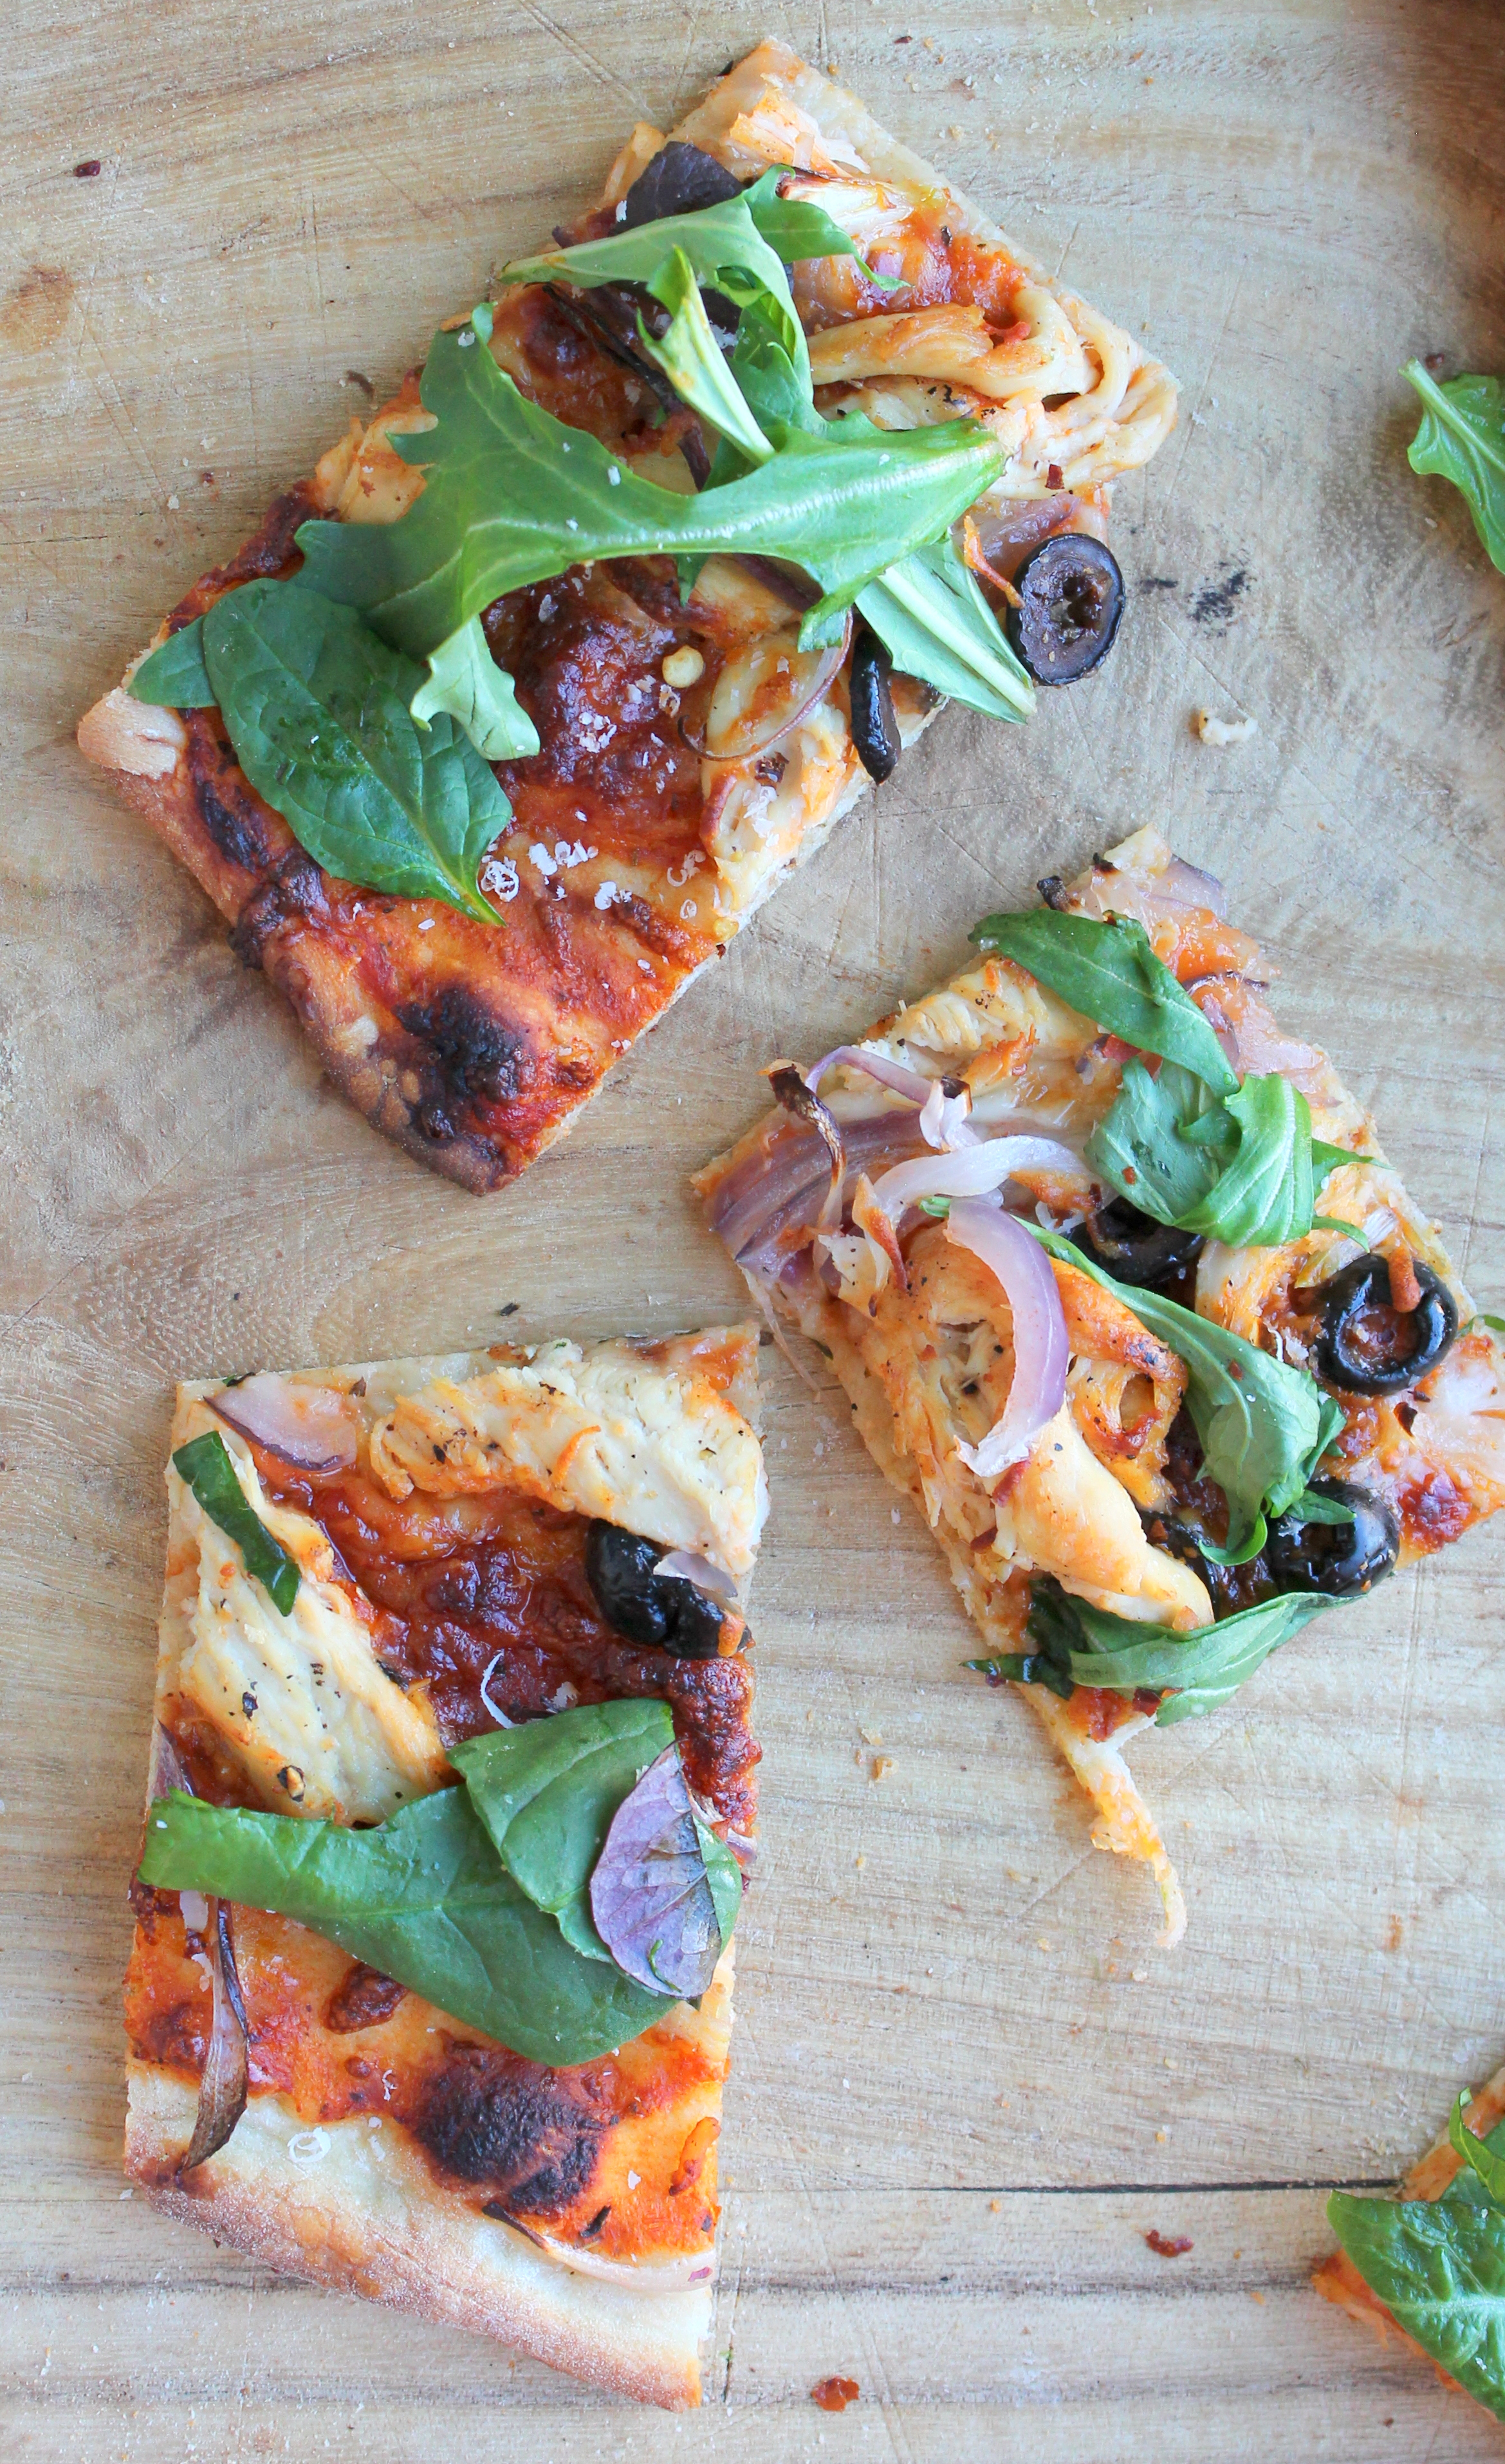 Easy Thin Crust Pizza is a full proof recipe that requires less than an hour to rise. The dough can be pre-made and you can enjoy it with your favorite toppings even on a weeknight.